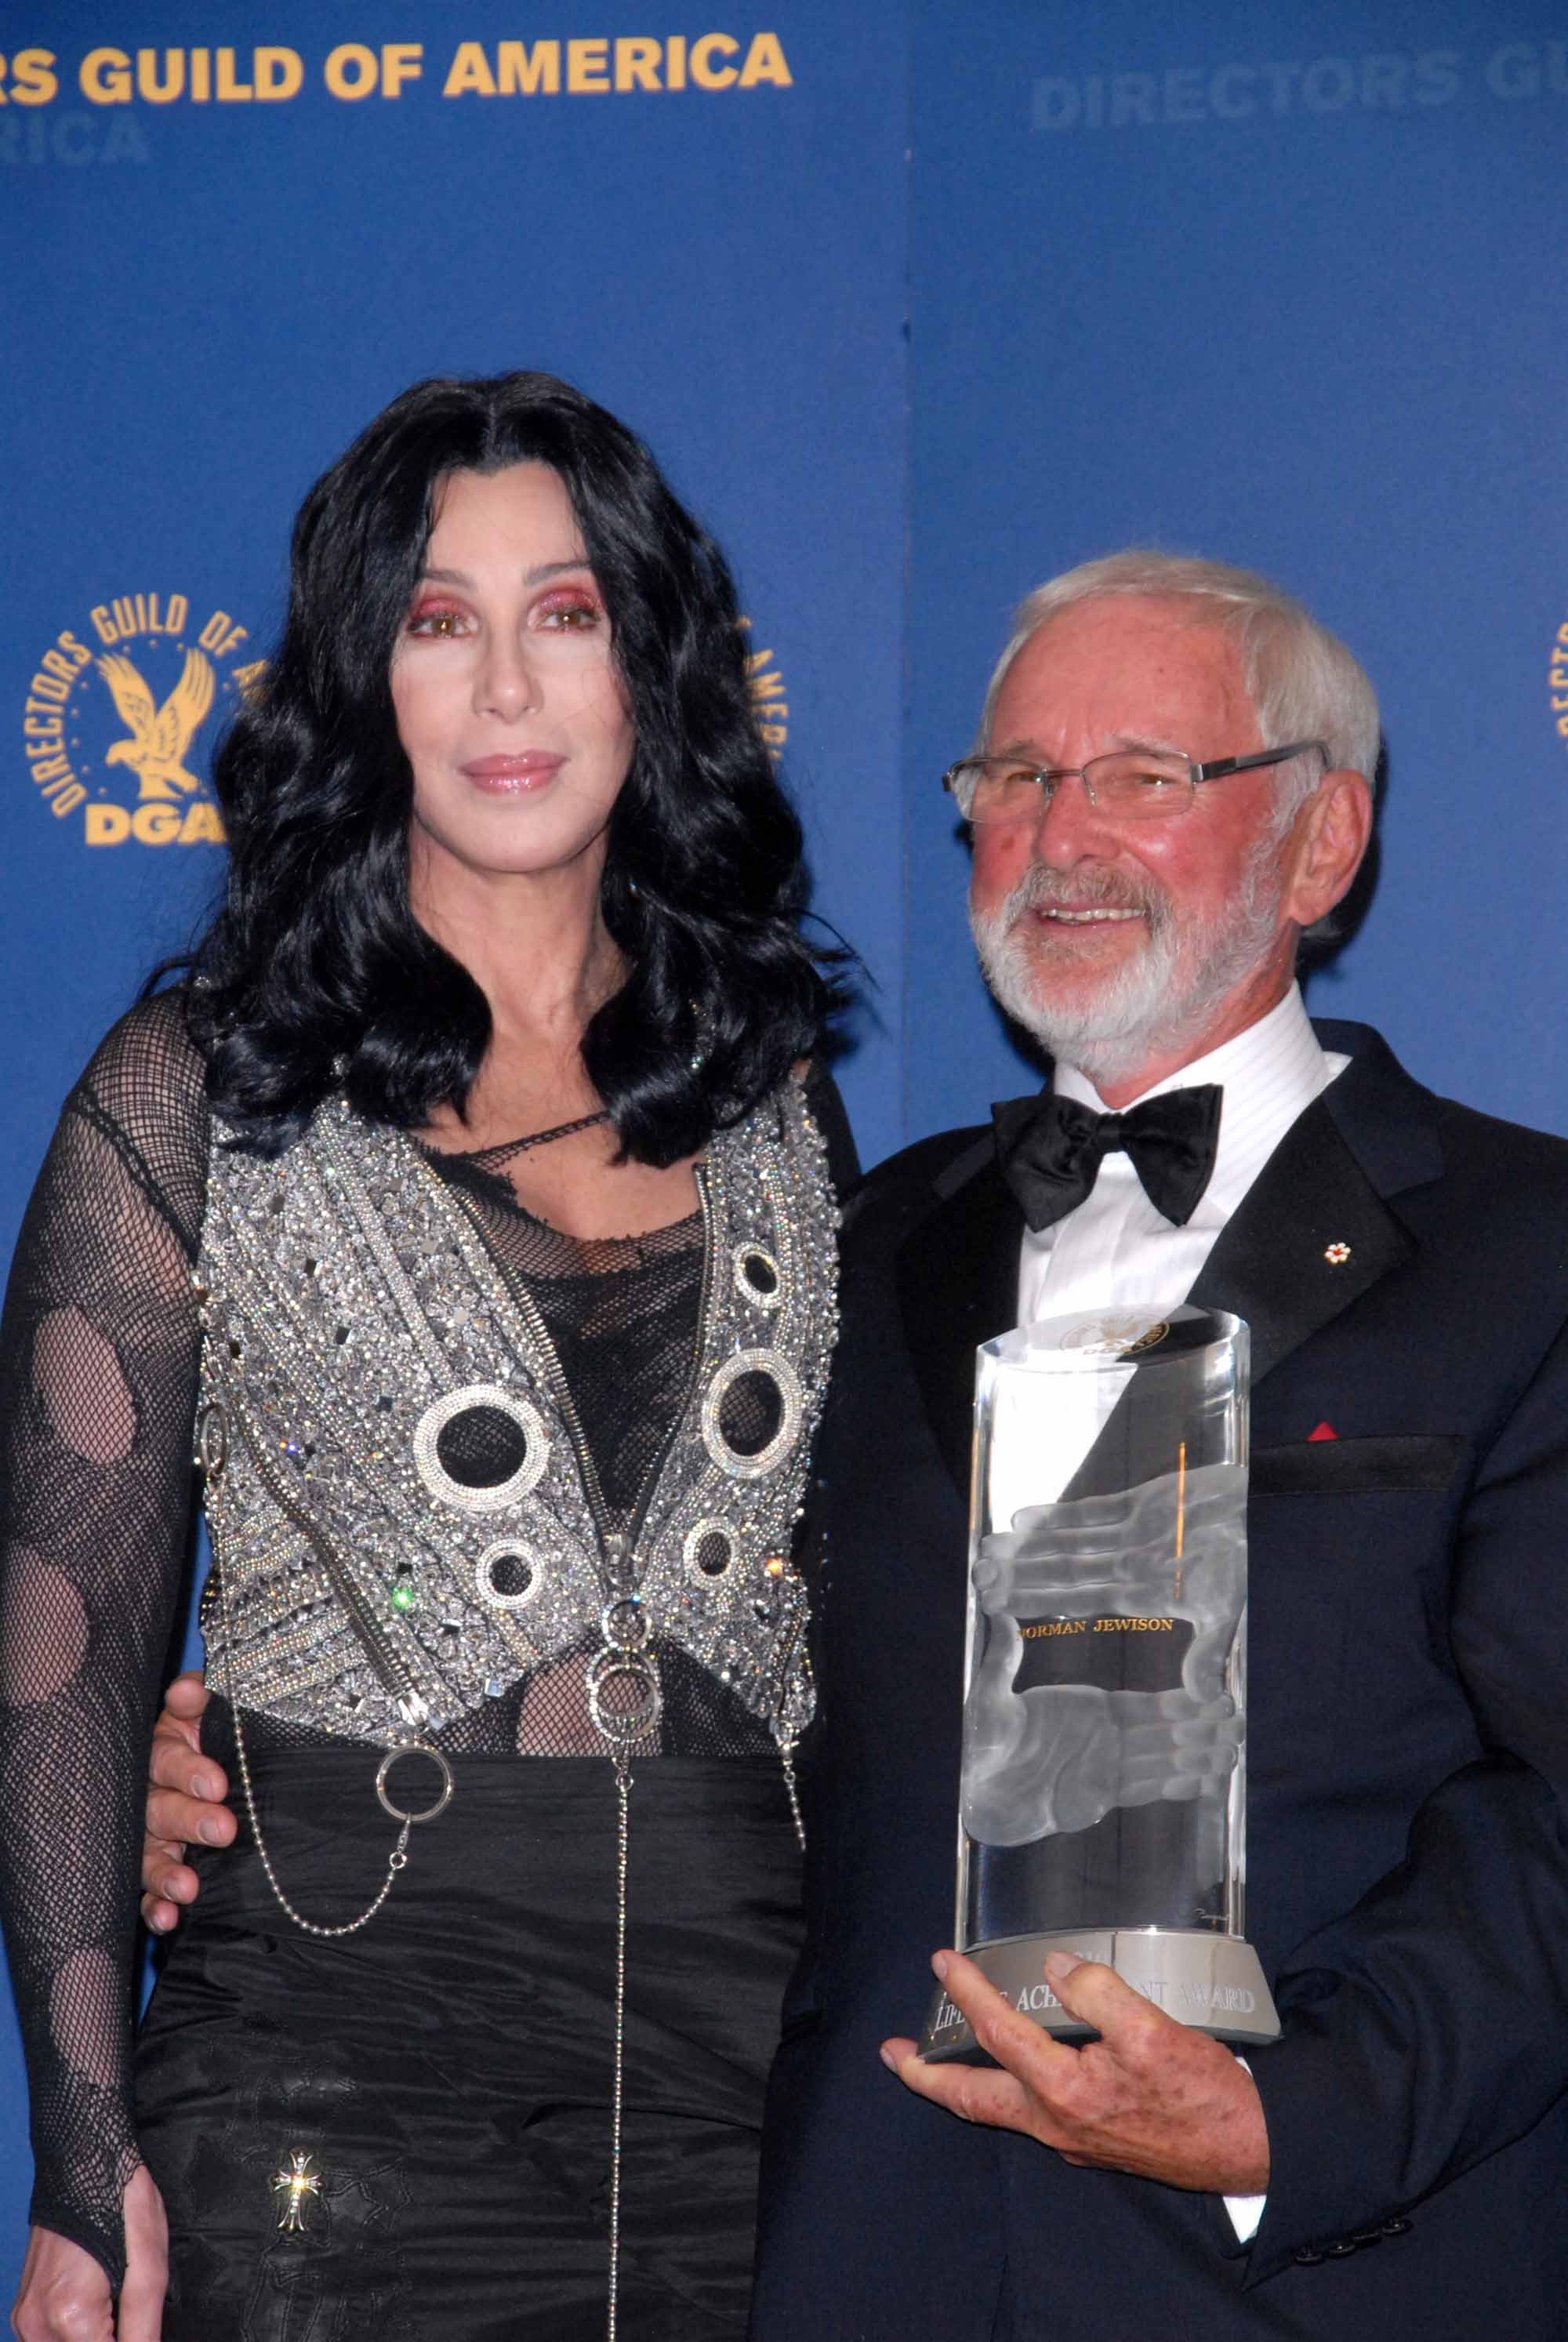 Norman Jewison and Cher